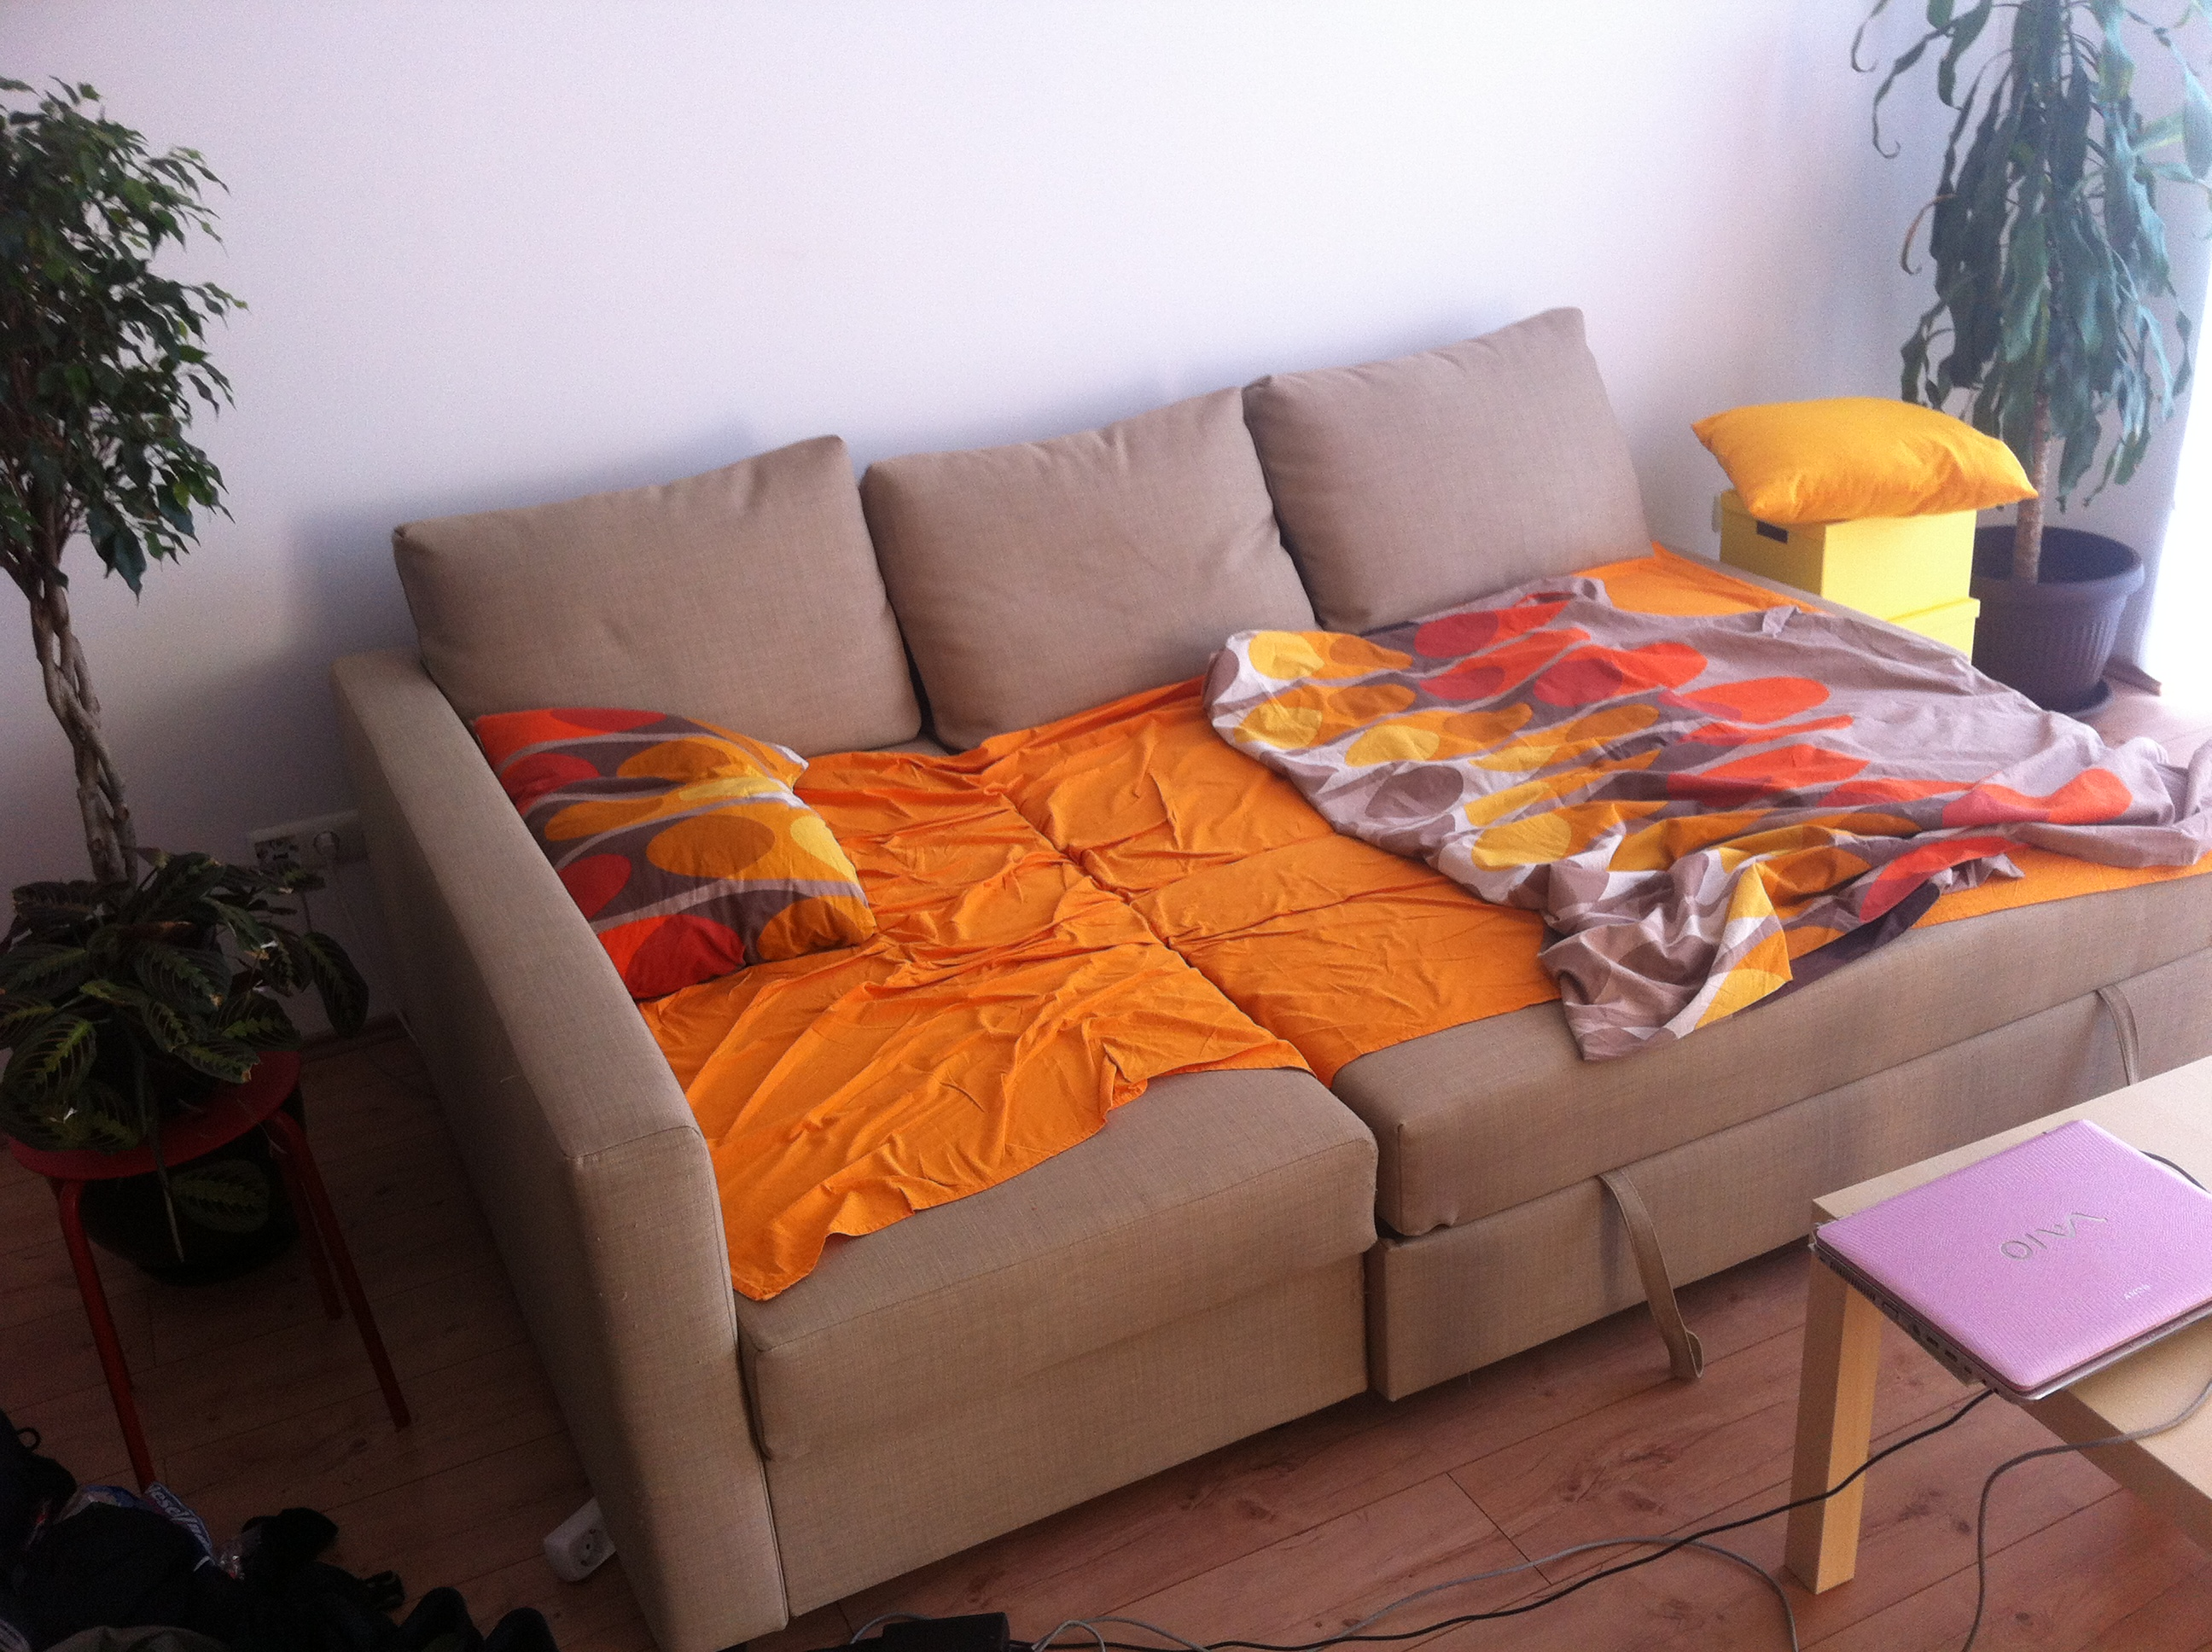 Couchsurfing Bulgaria - The Backpacker Intern